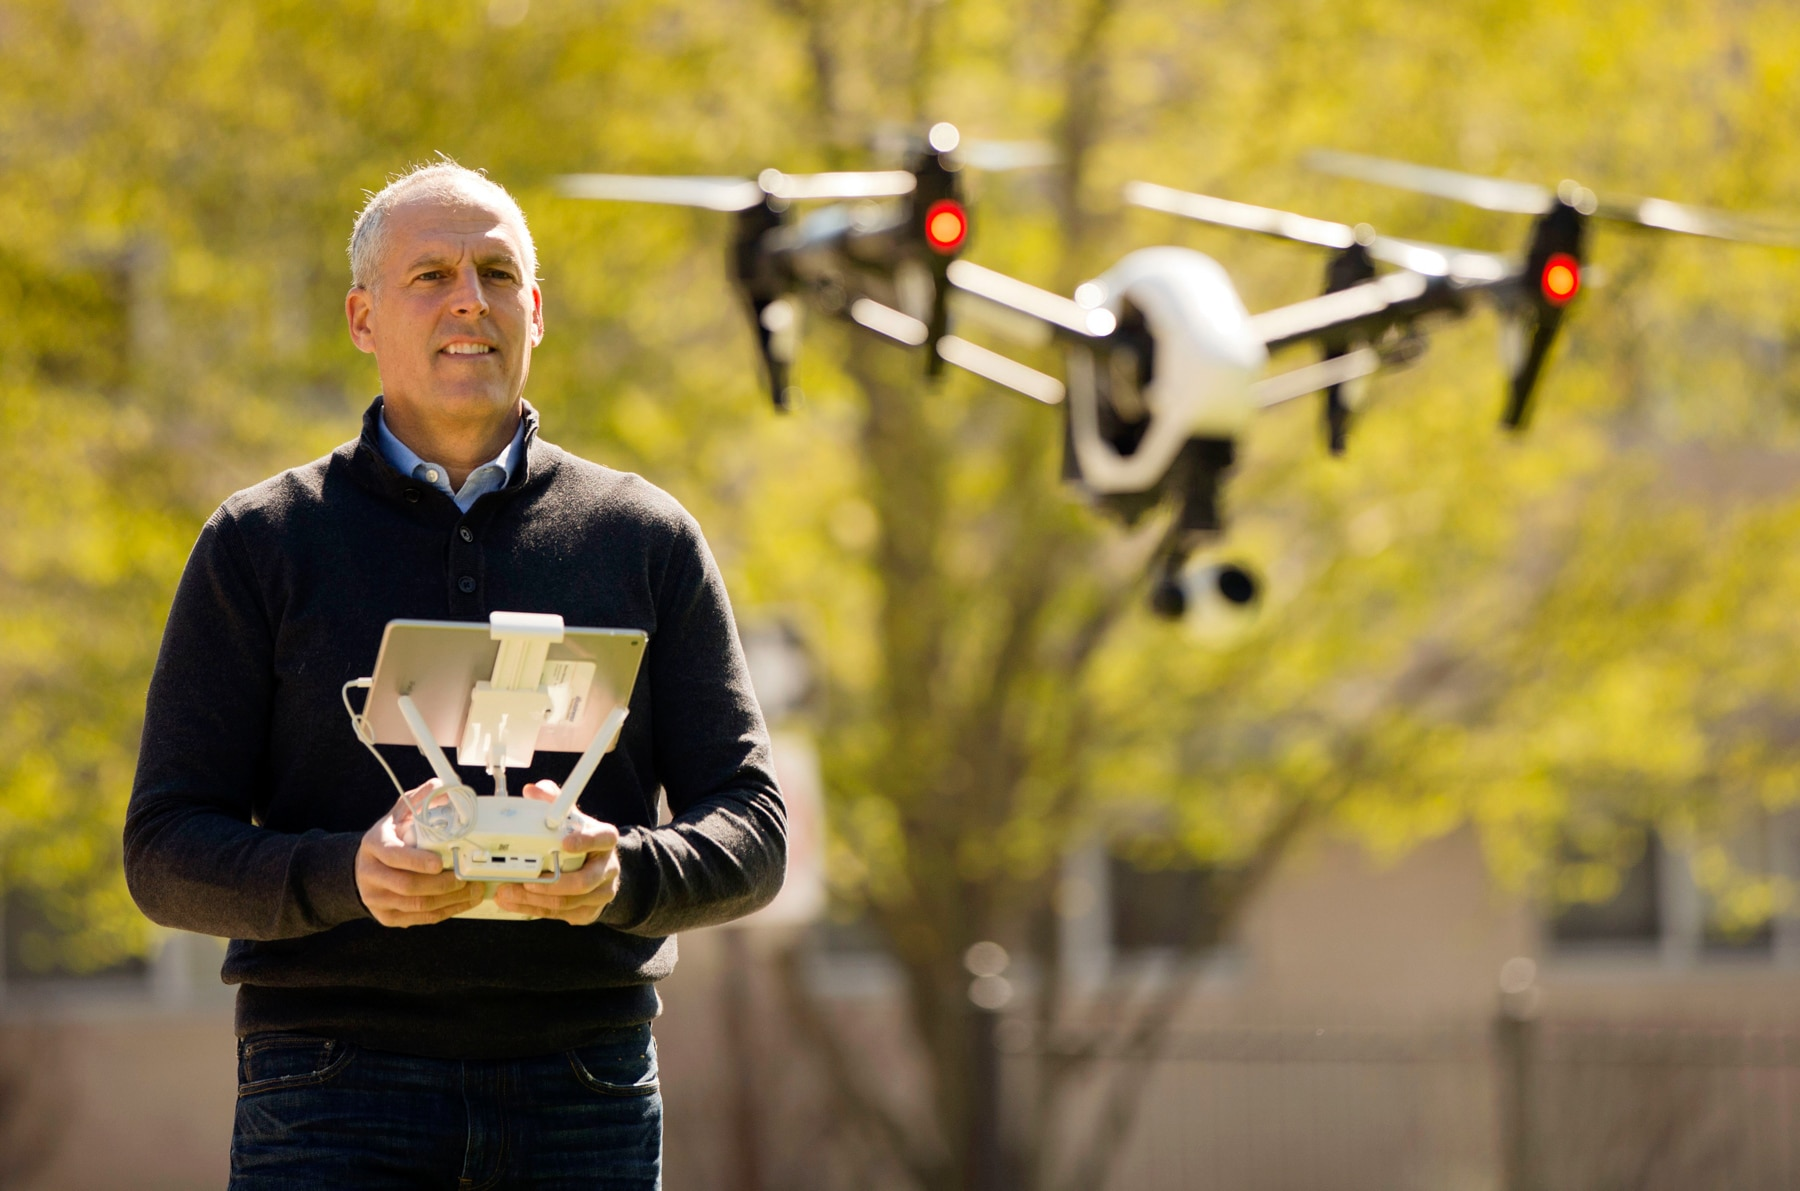 Man flying a drone (© AP Images)